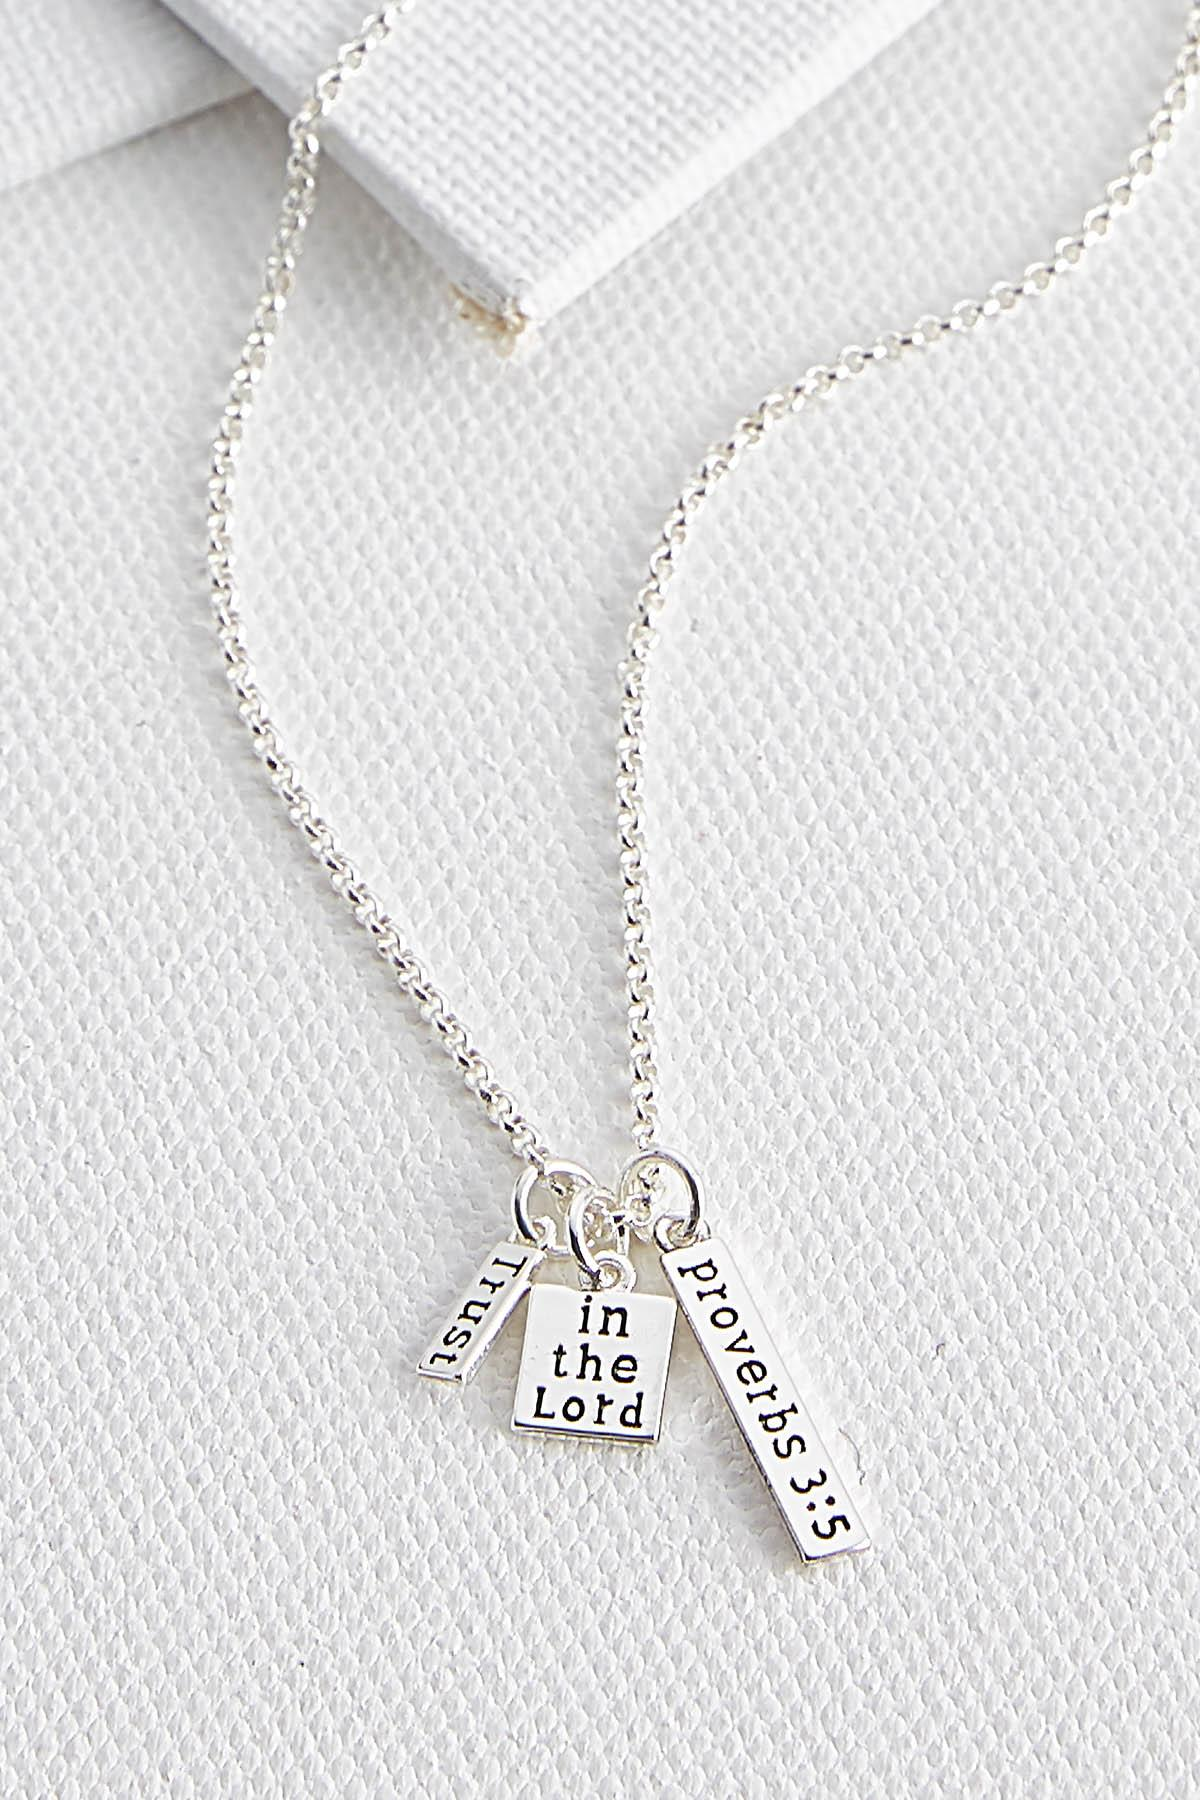 Dainty Inspirational Pendant Necklace